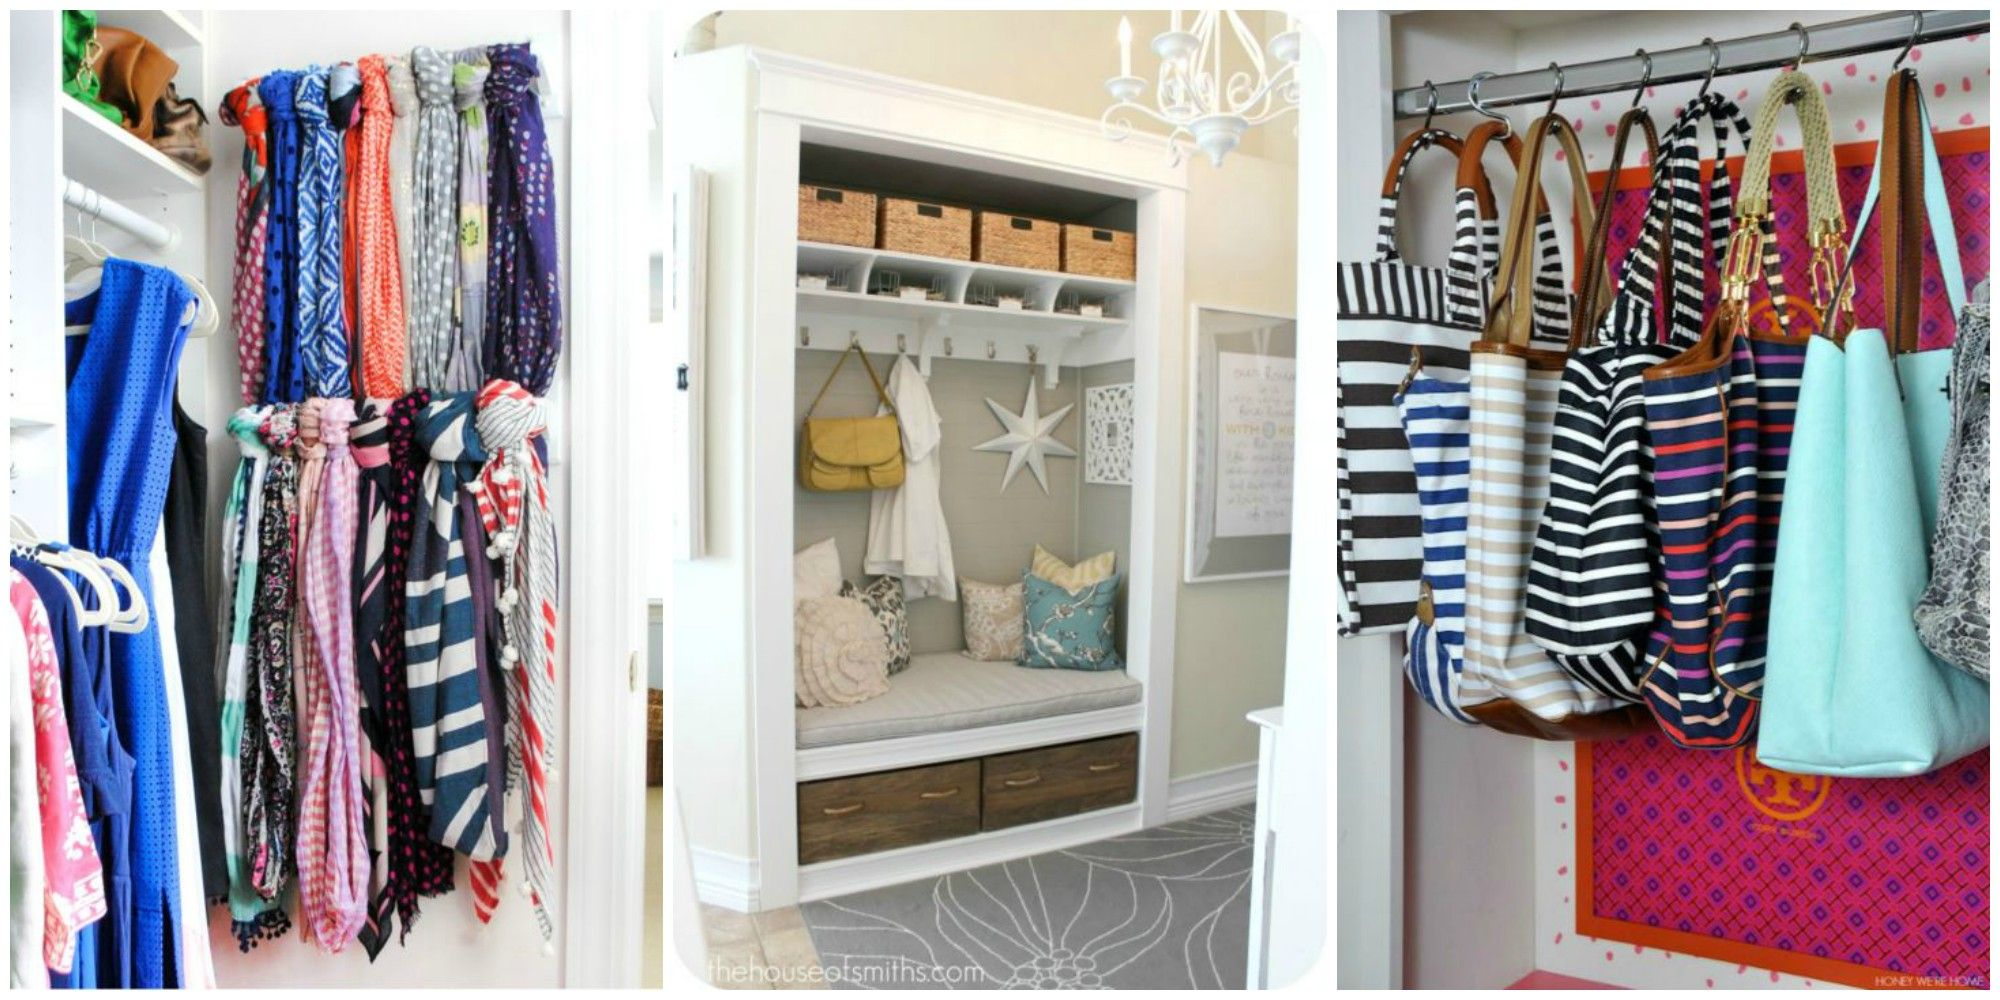 Closet Organization 14 Best Closet Organization Ideas How To Organize Your Closet